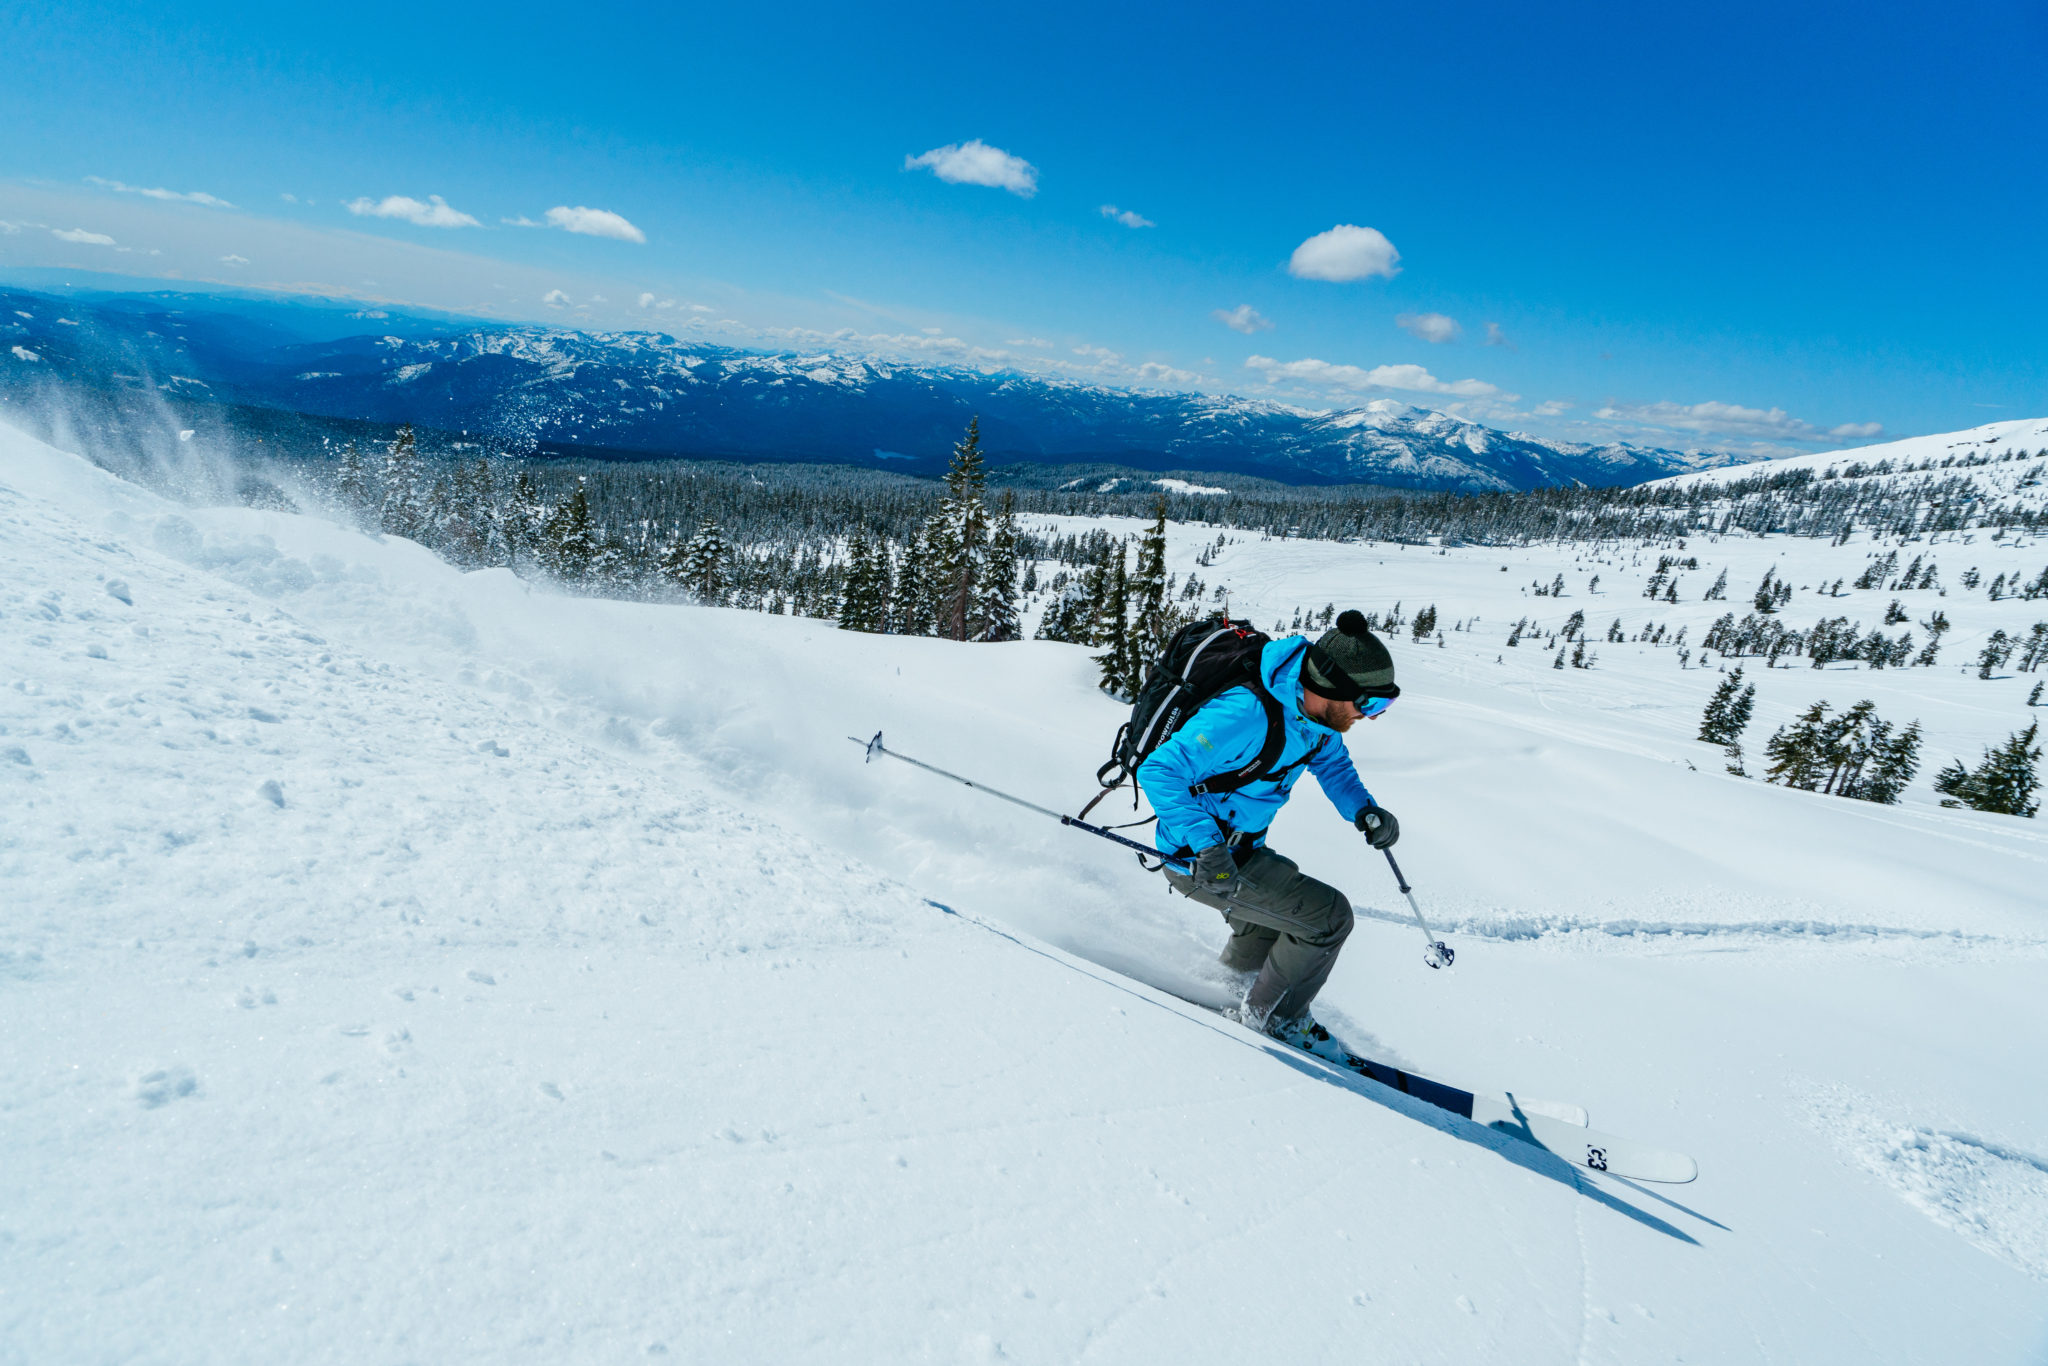 Discover Siskiyou Podcast featuring: Backcountry Skiing - Mount Shasta